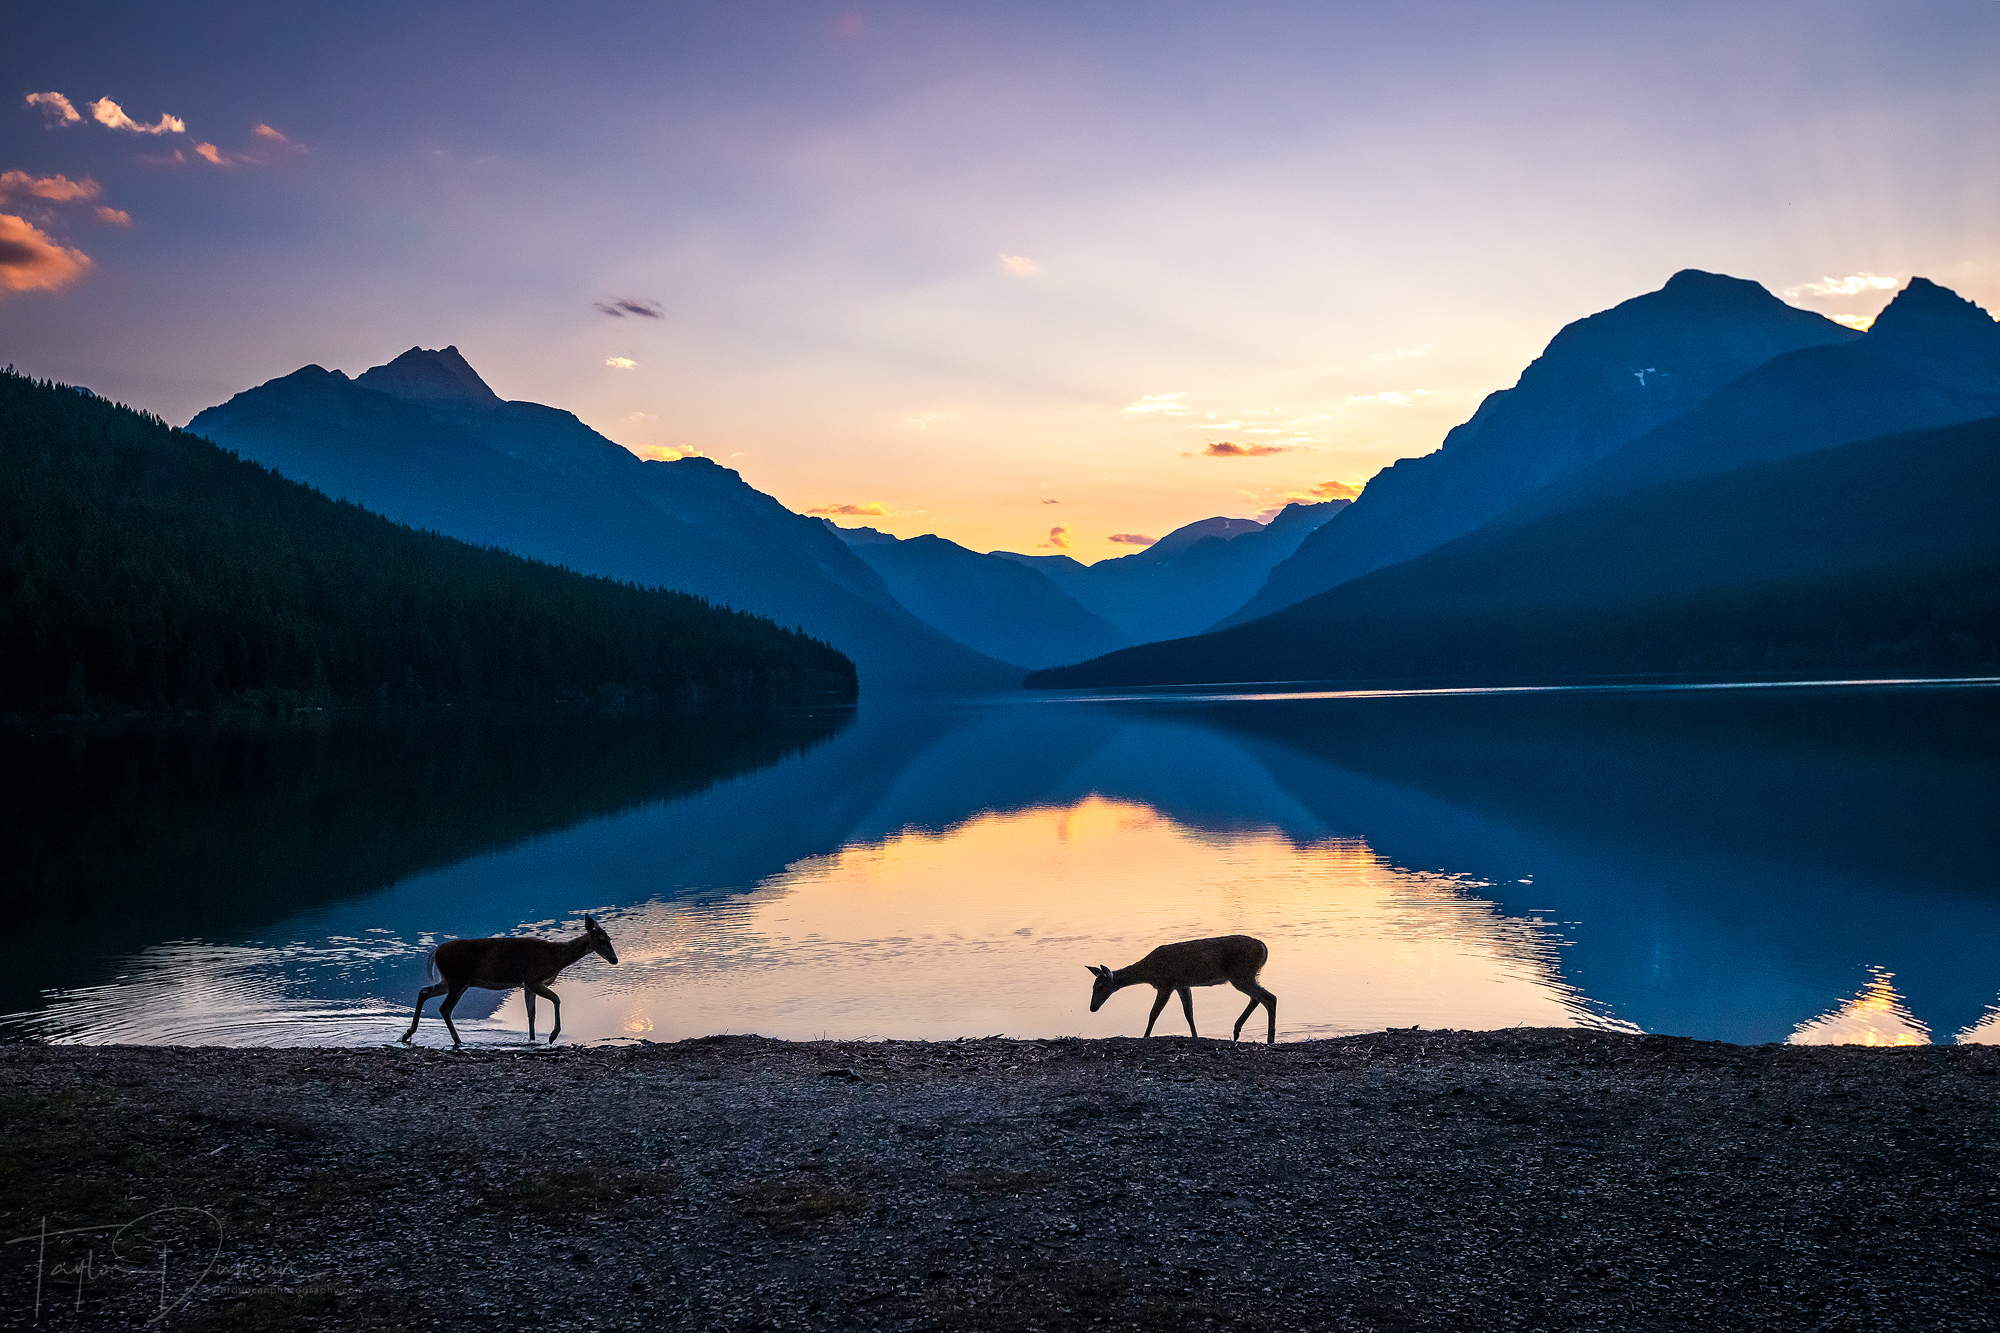 If you're lucky, you can photograph deer on the shoreline of the lake - sunrise in this case